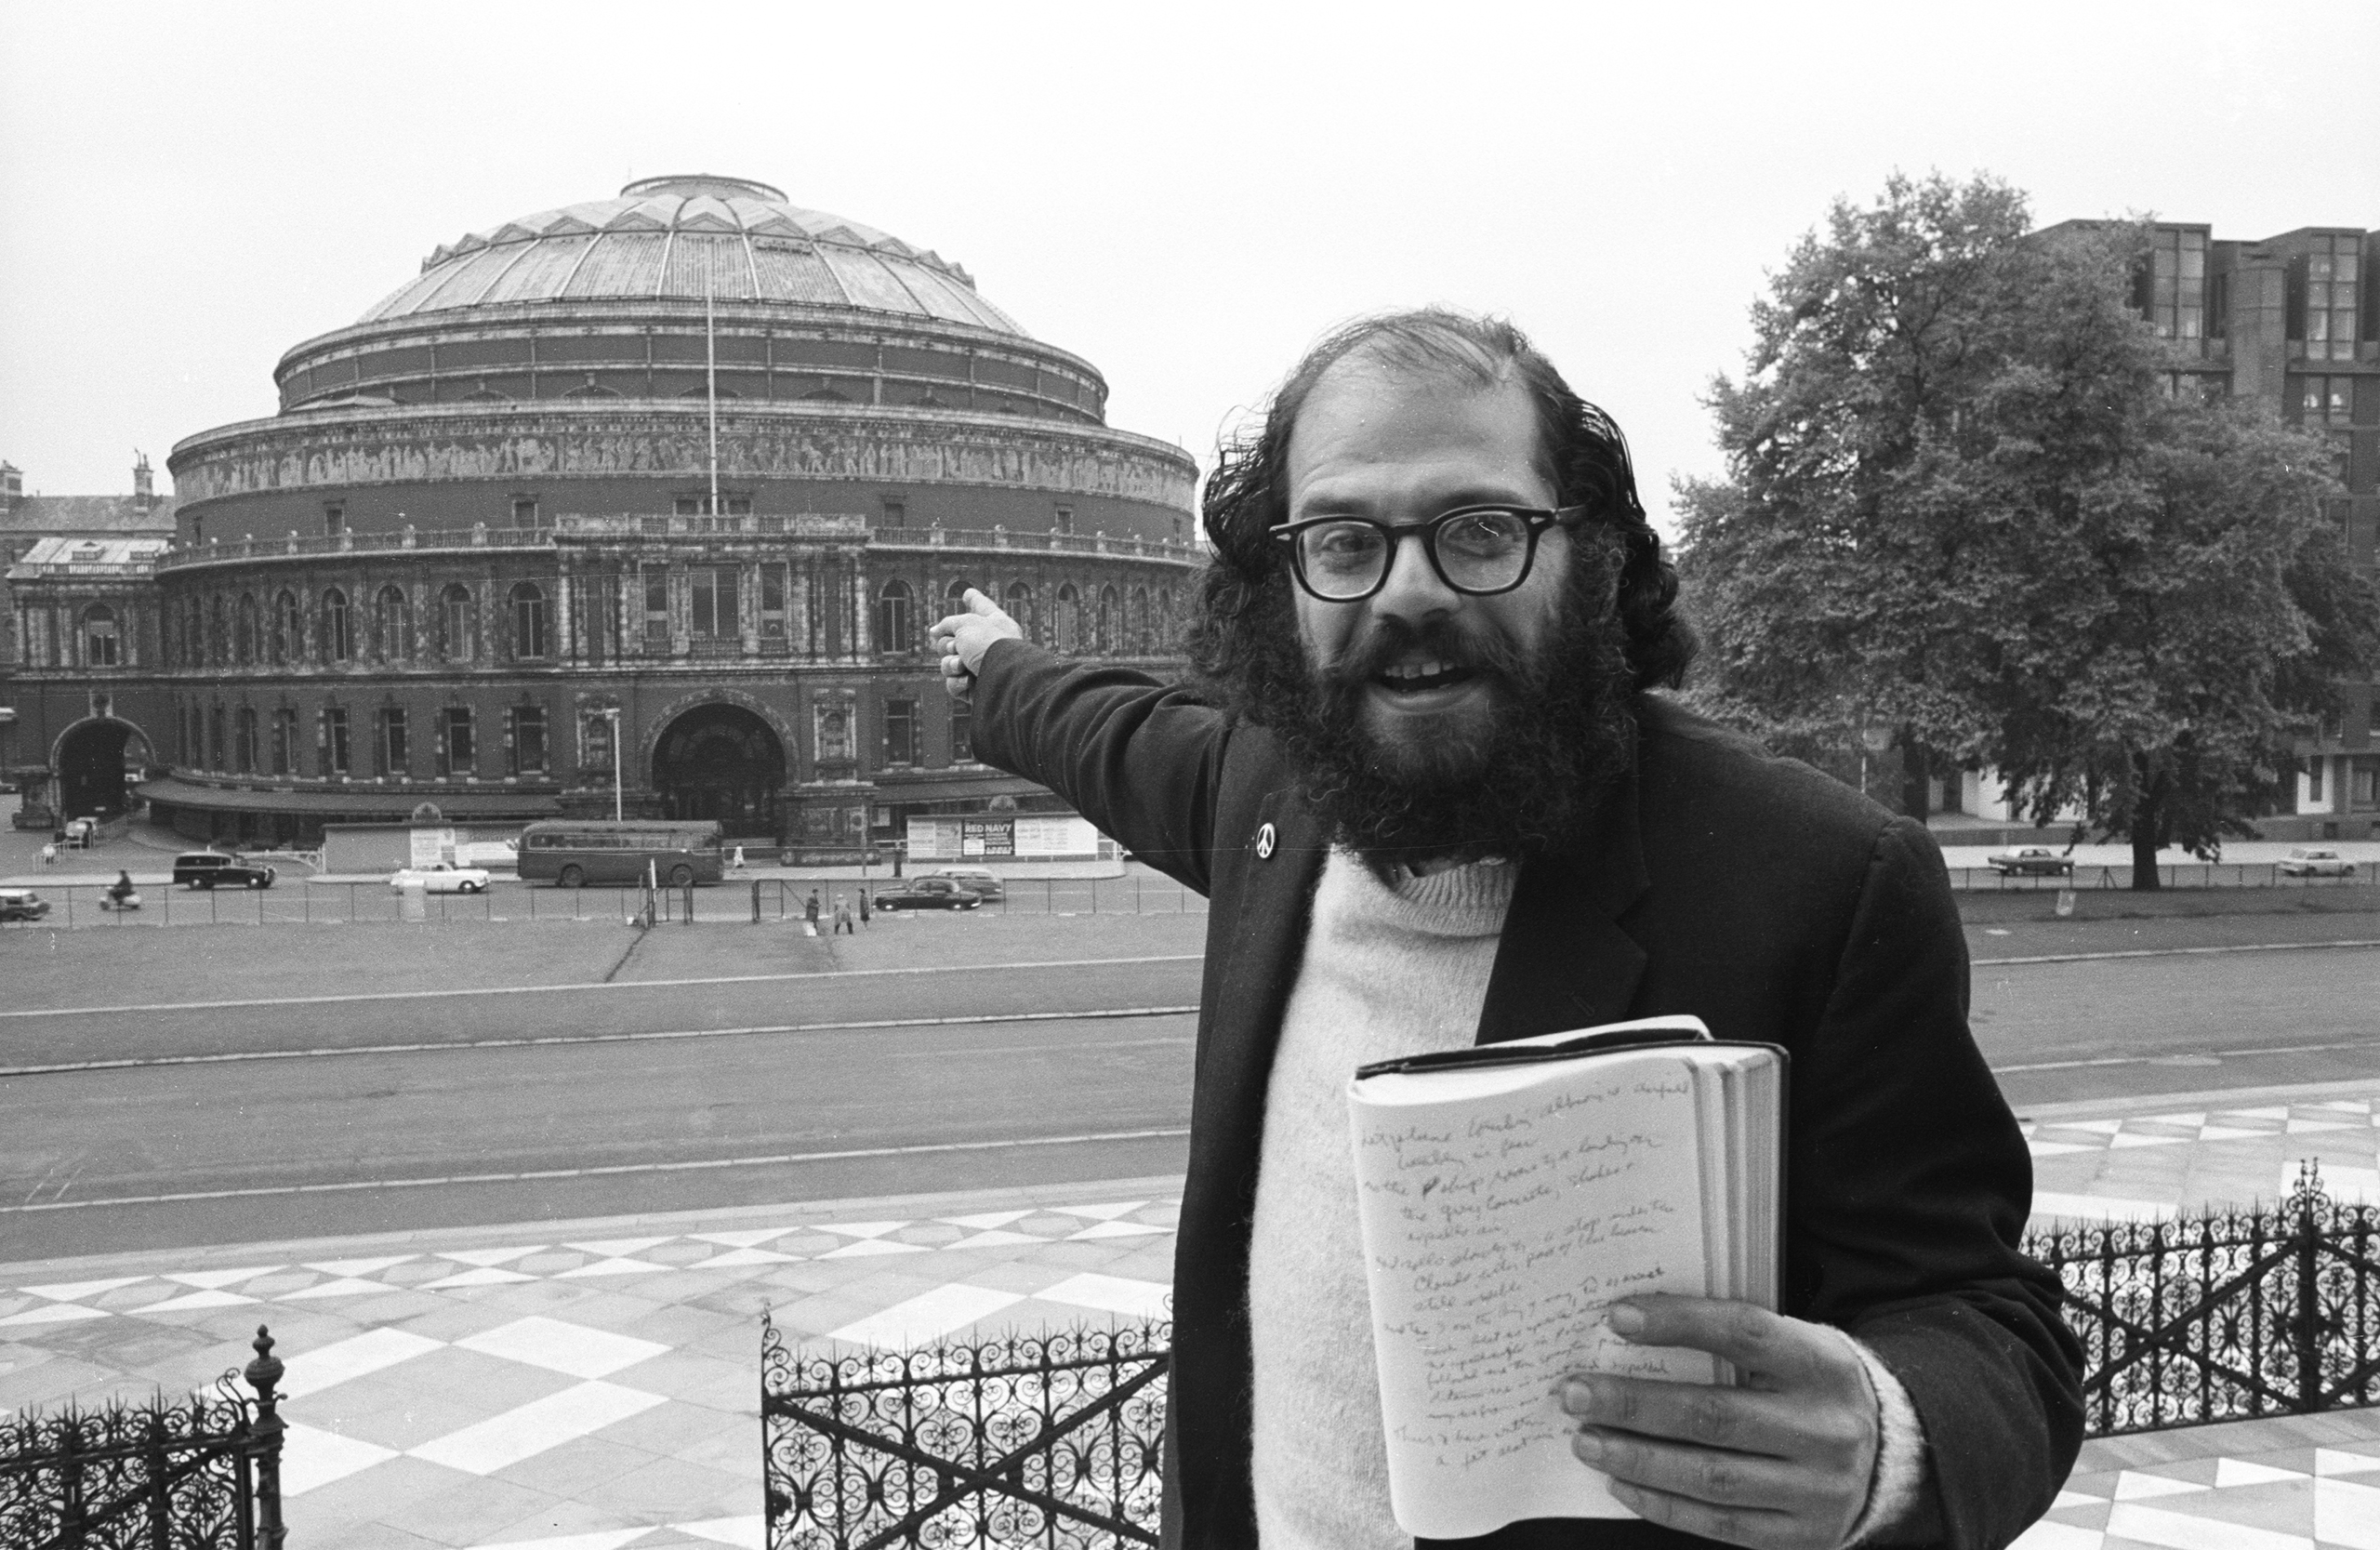 allen ginsberg america Penetrating aether: the beat generation and allen ginsberg's america by sean wilentz aaron copland's first important musical project after billy the kid was to write the score, .